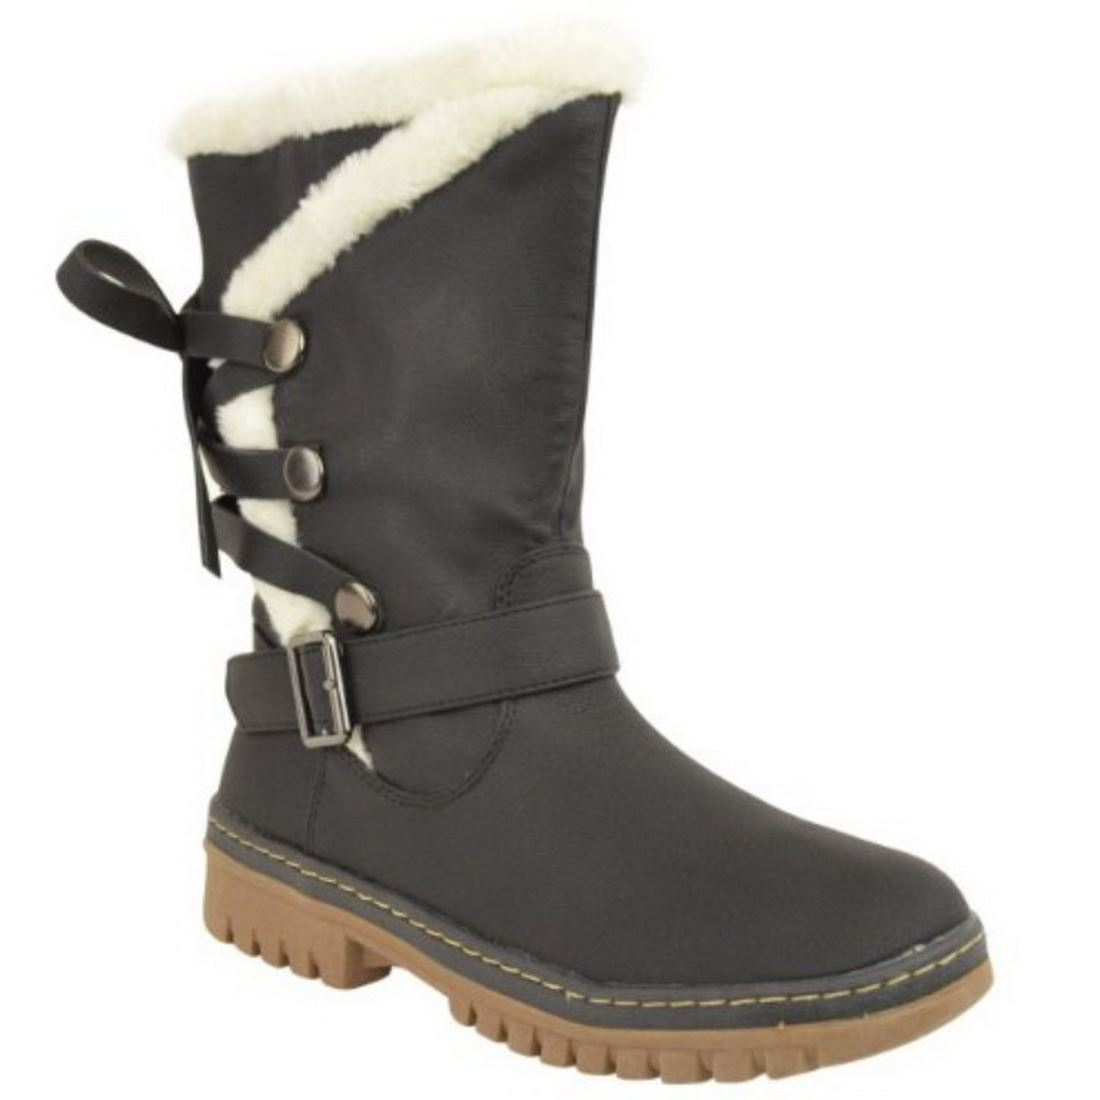 NEW WOMENS LADIES FUR LINED MID CALF FLAT WINTER SNOW